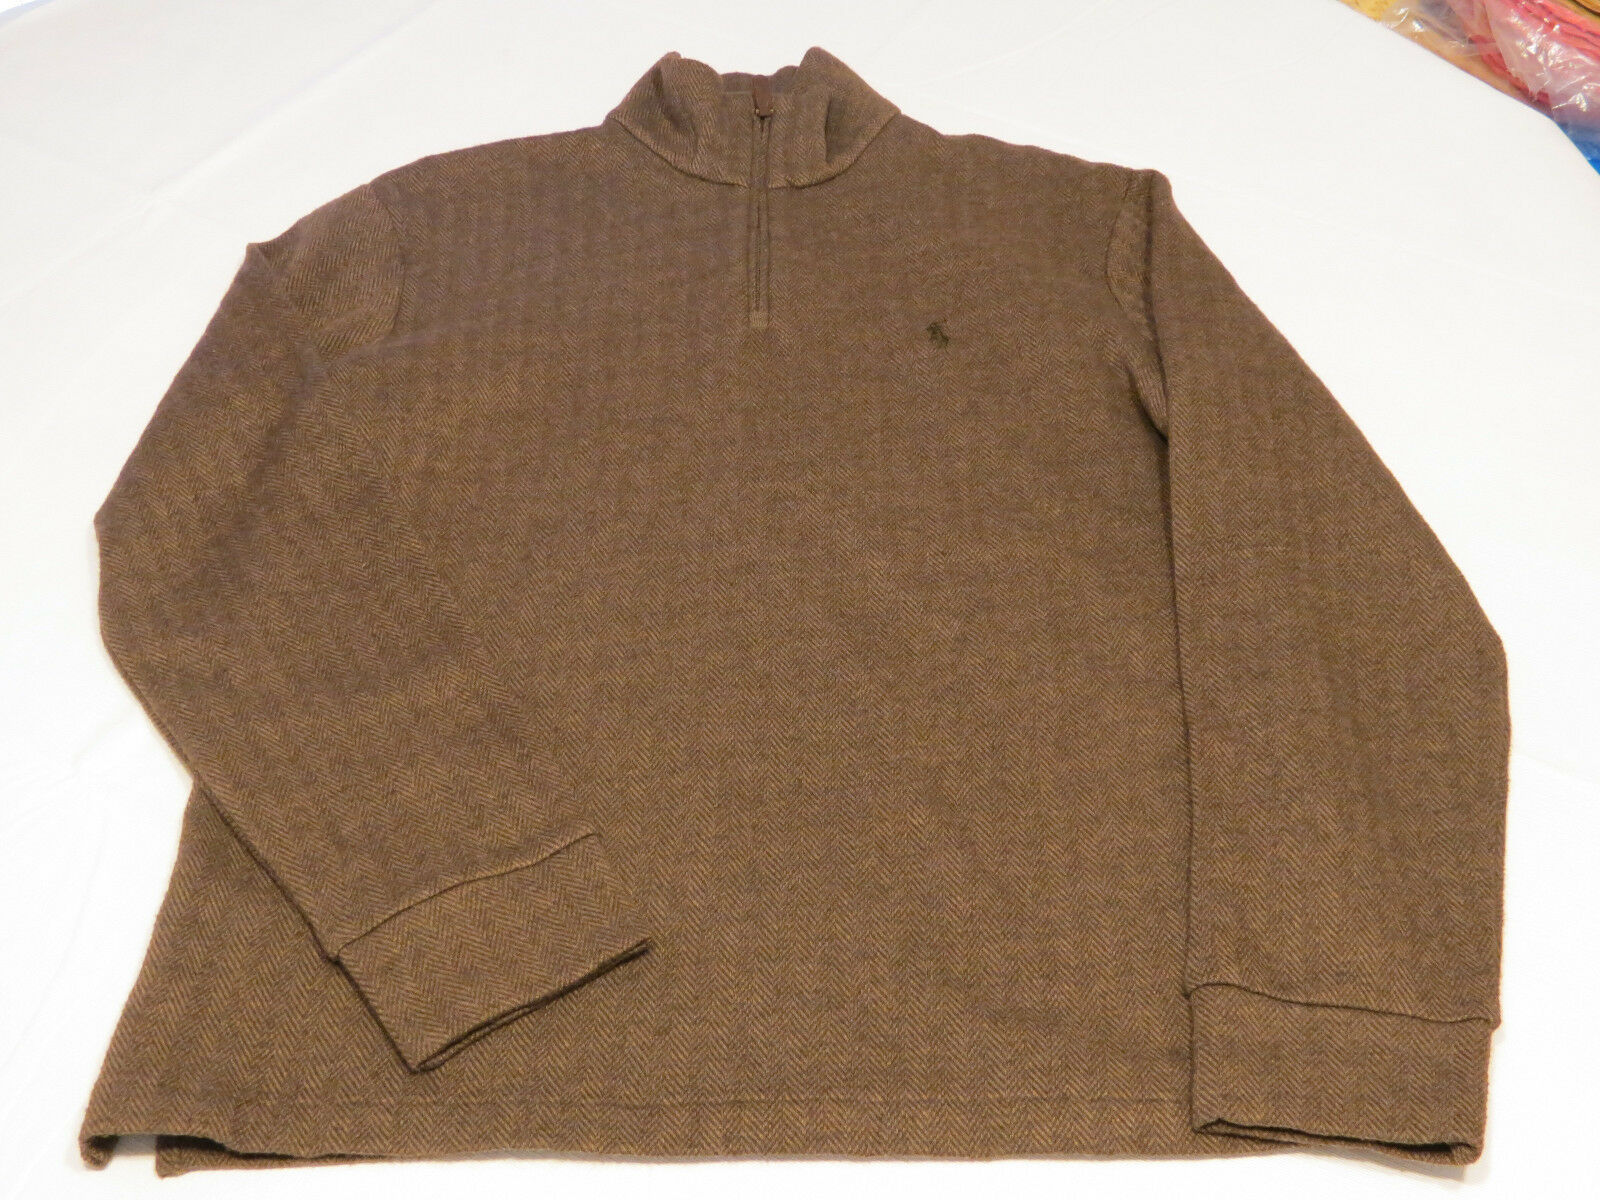 Polo Ralph Lauren 1 4 zip long sleeve shirt S small Mens brown fleece zig zag